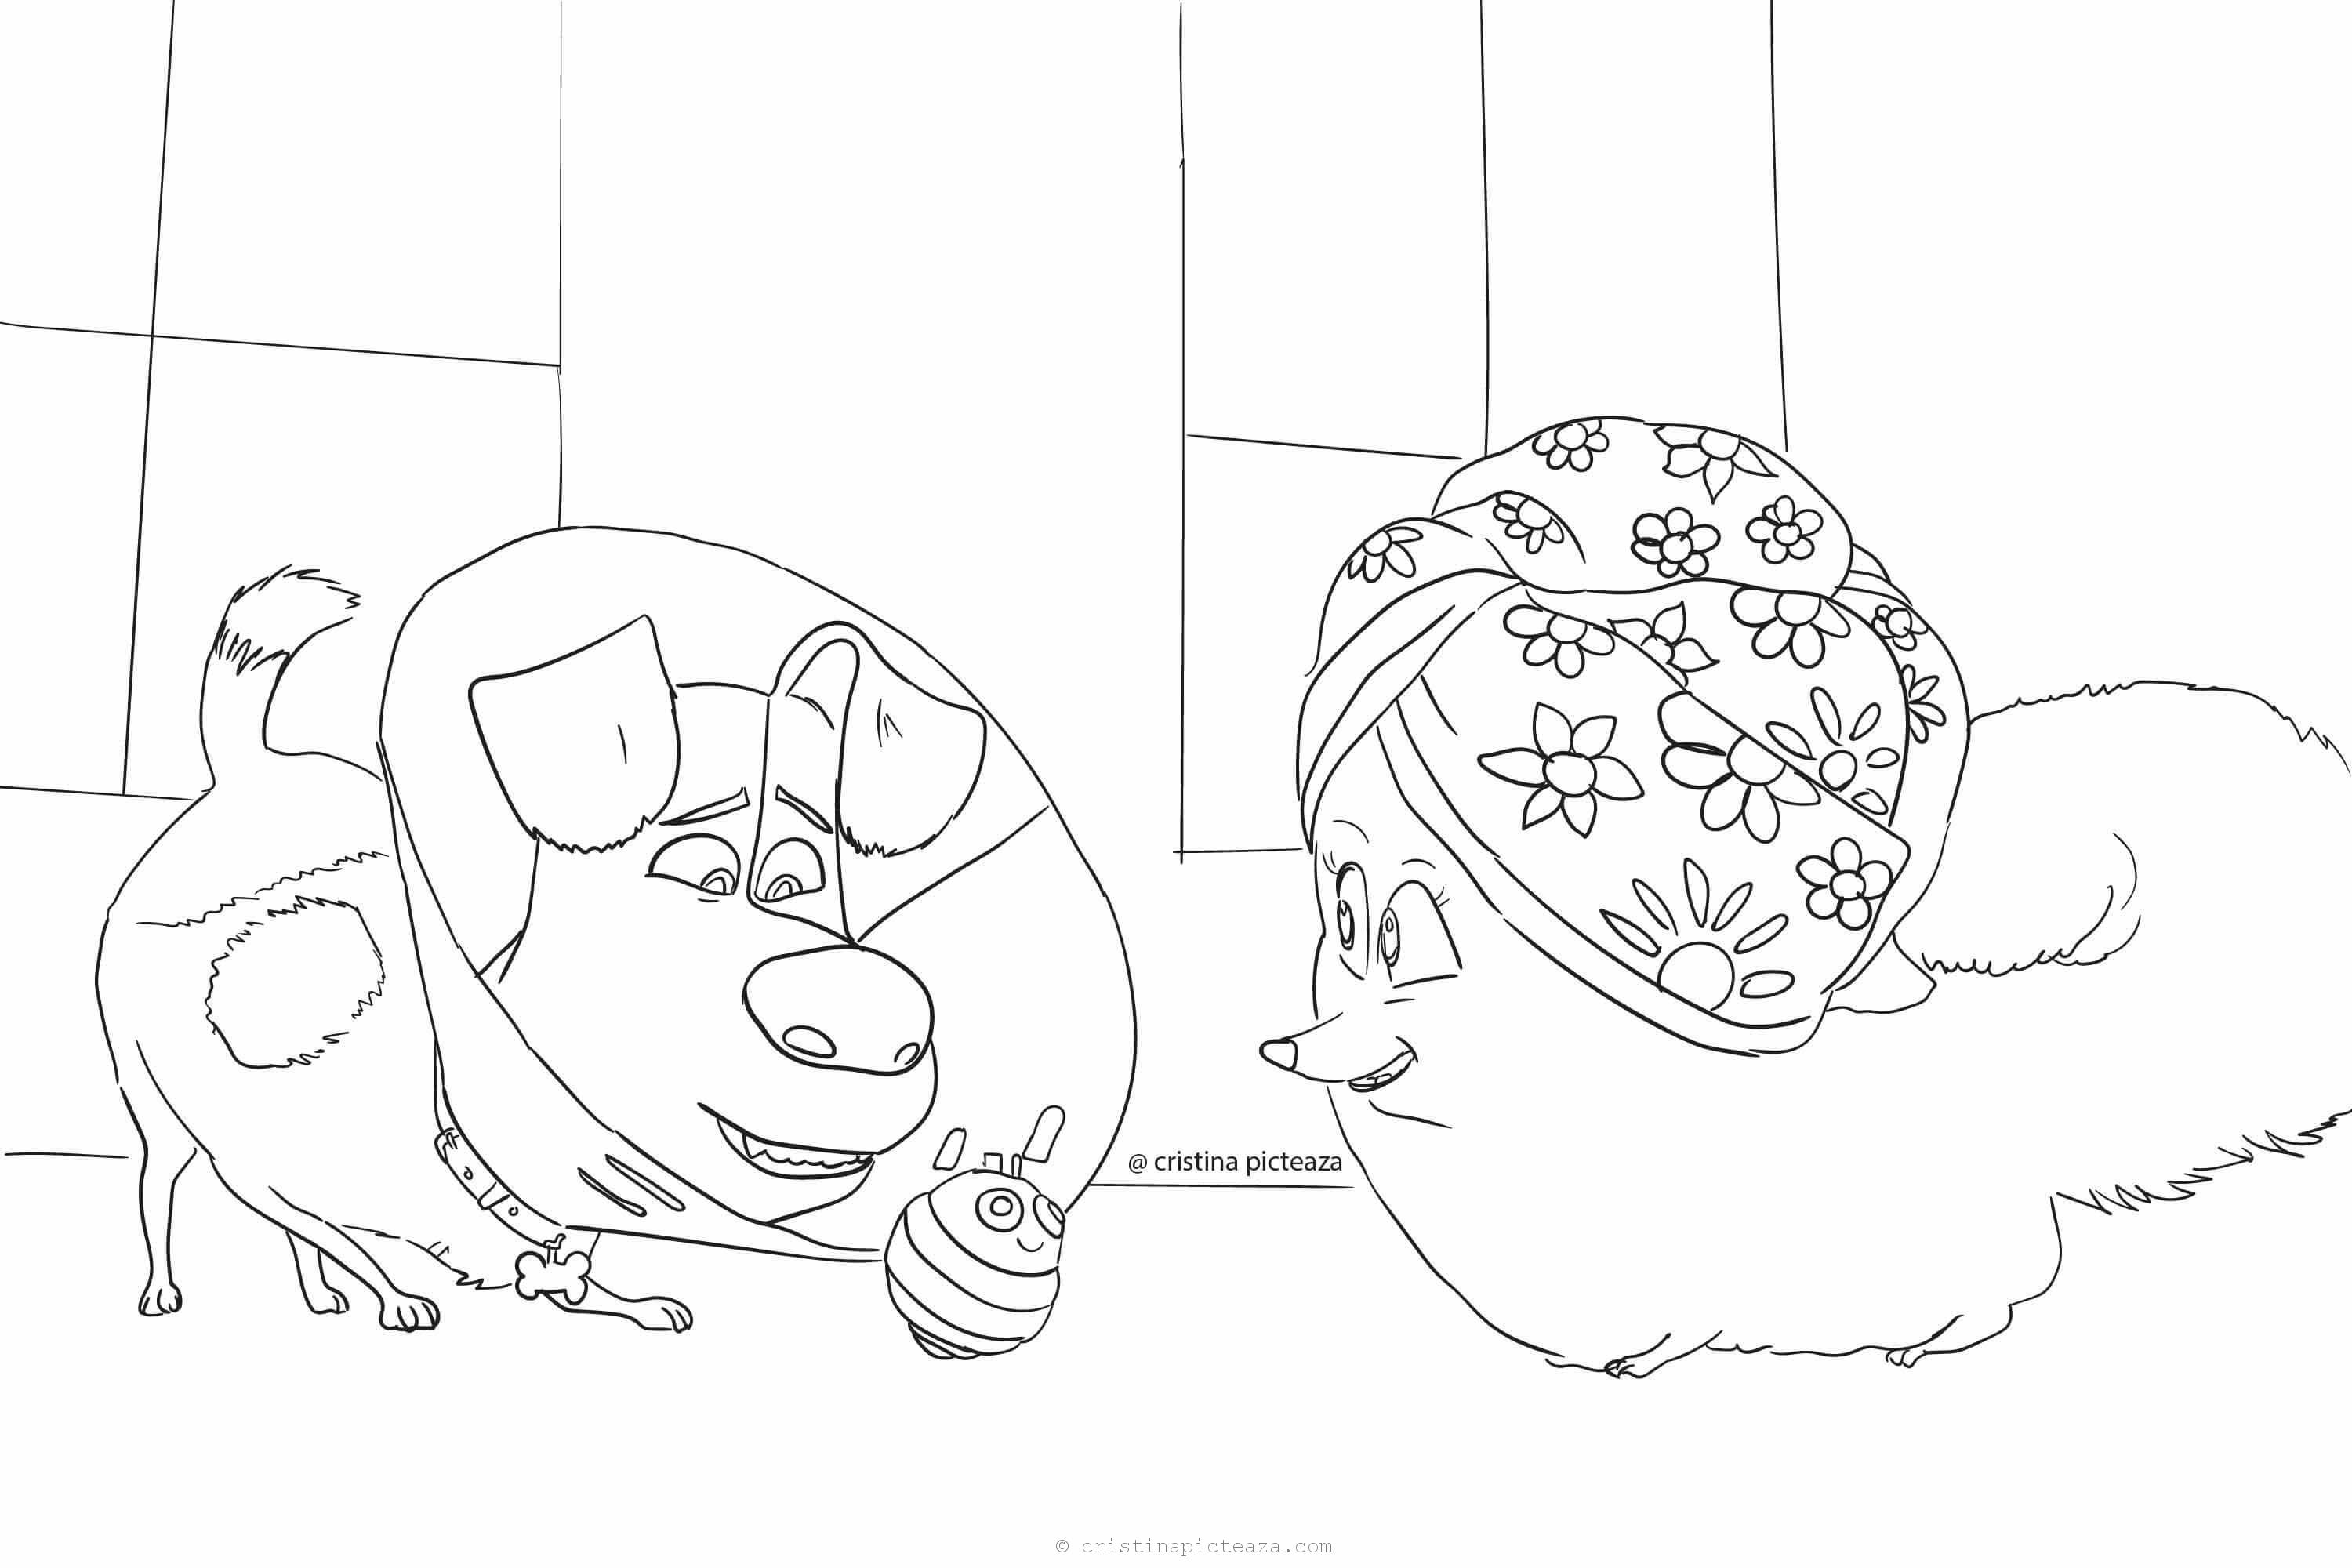 Secret Life of Pets 2 Coloring Pages - Cristina is Painting